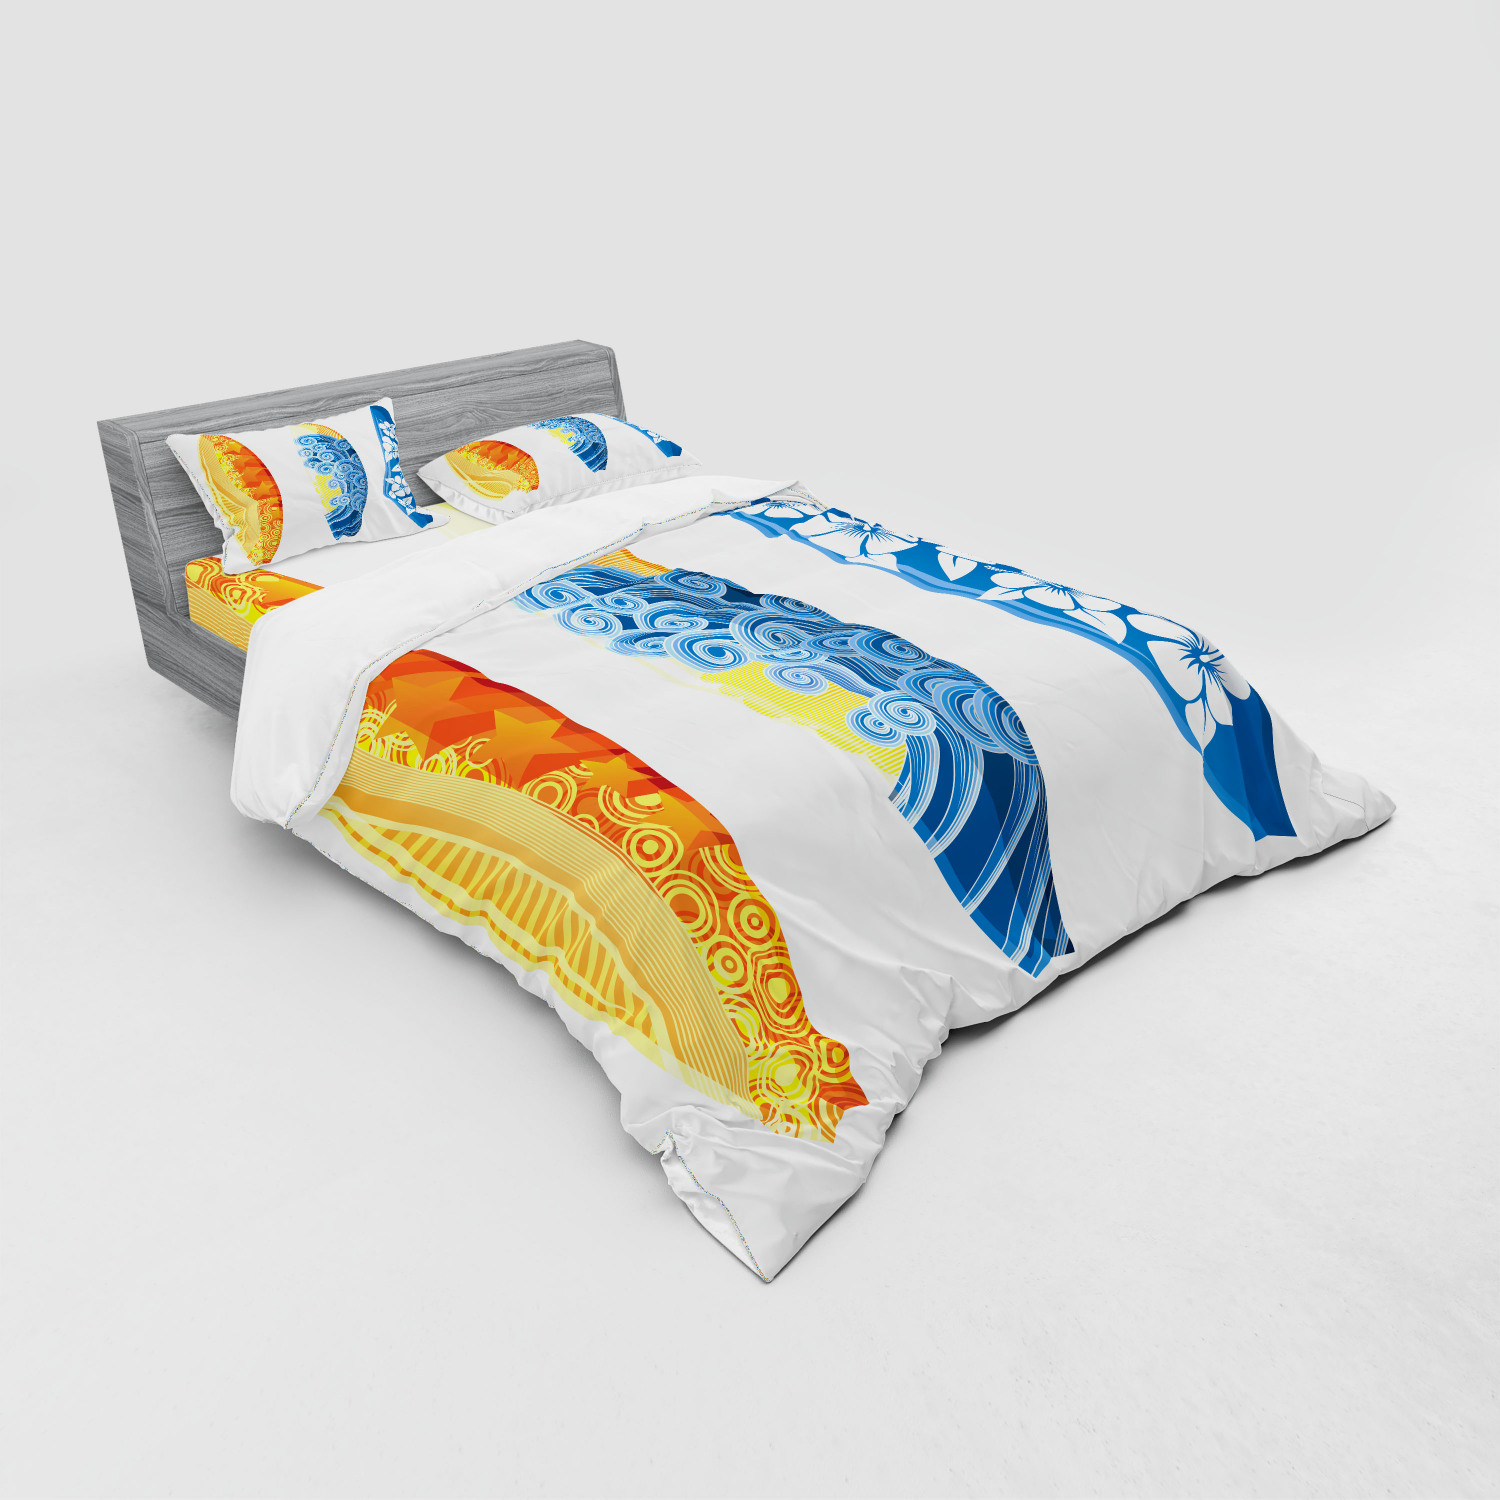 thumbnail 207 - Ambesonne Summer Bedding Set Duvet Cover Sham Fitted Sheet in 3 Sizes